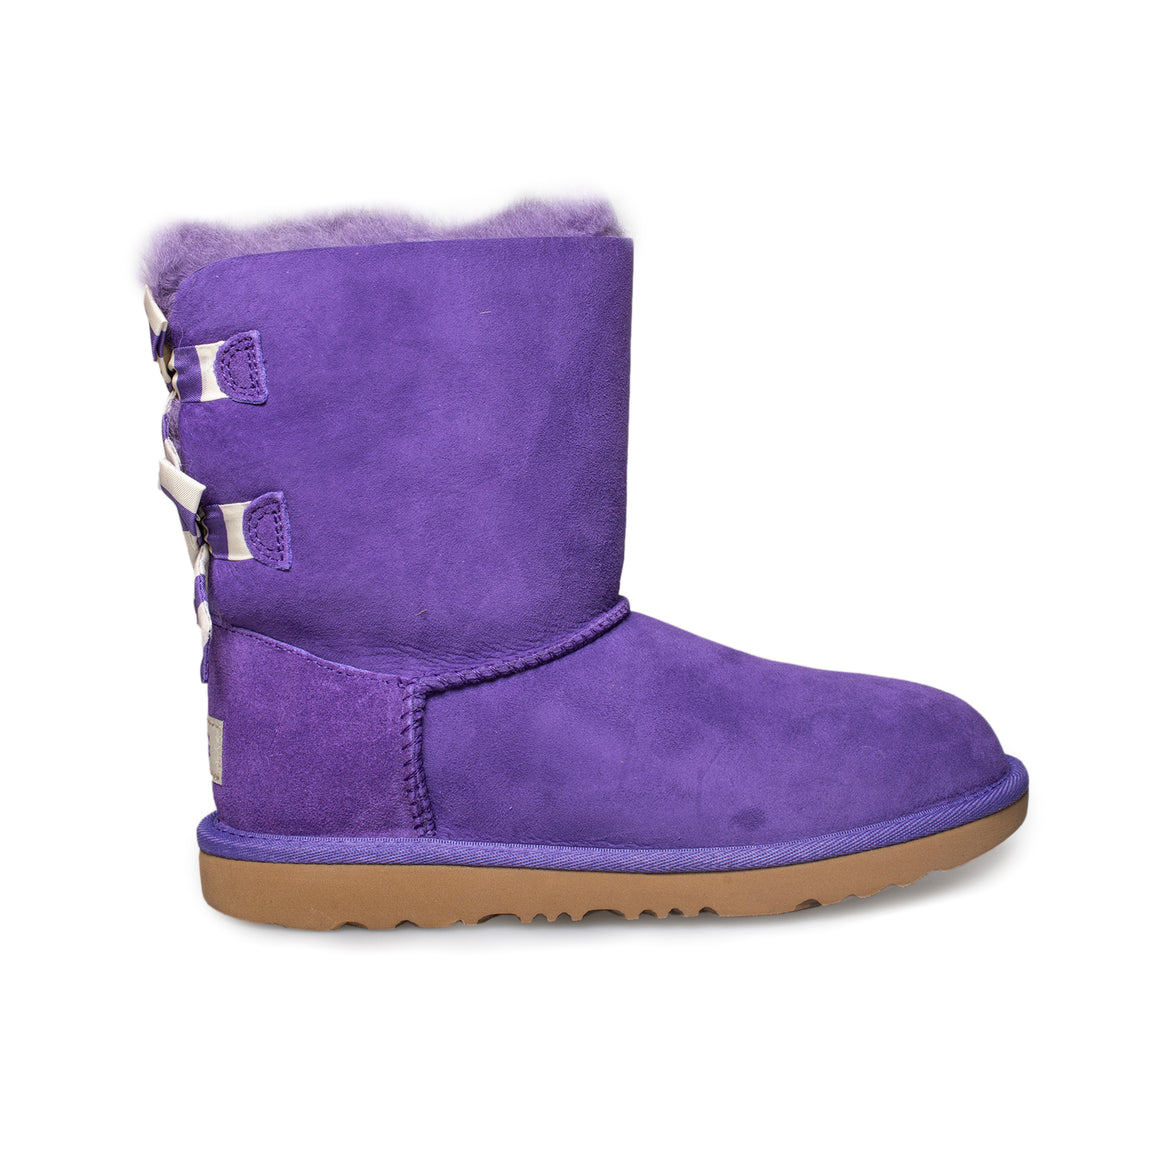 UGG Bailey Bow II Striped Violet Bloom Boots - Kid's